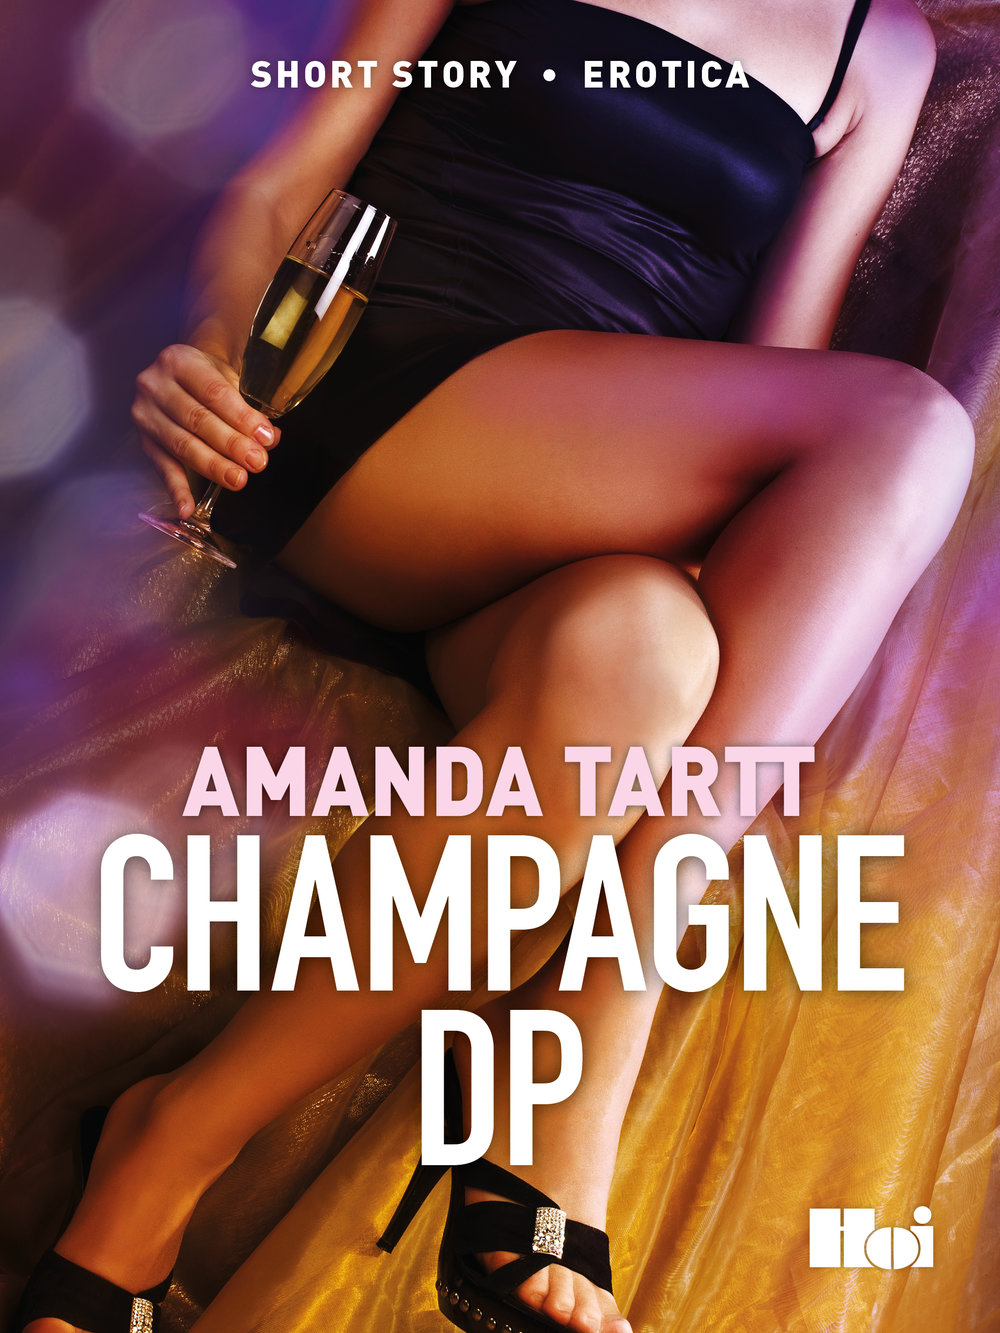 Champagne DP short story